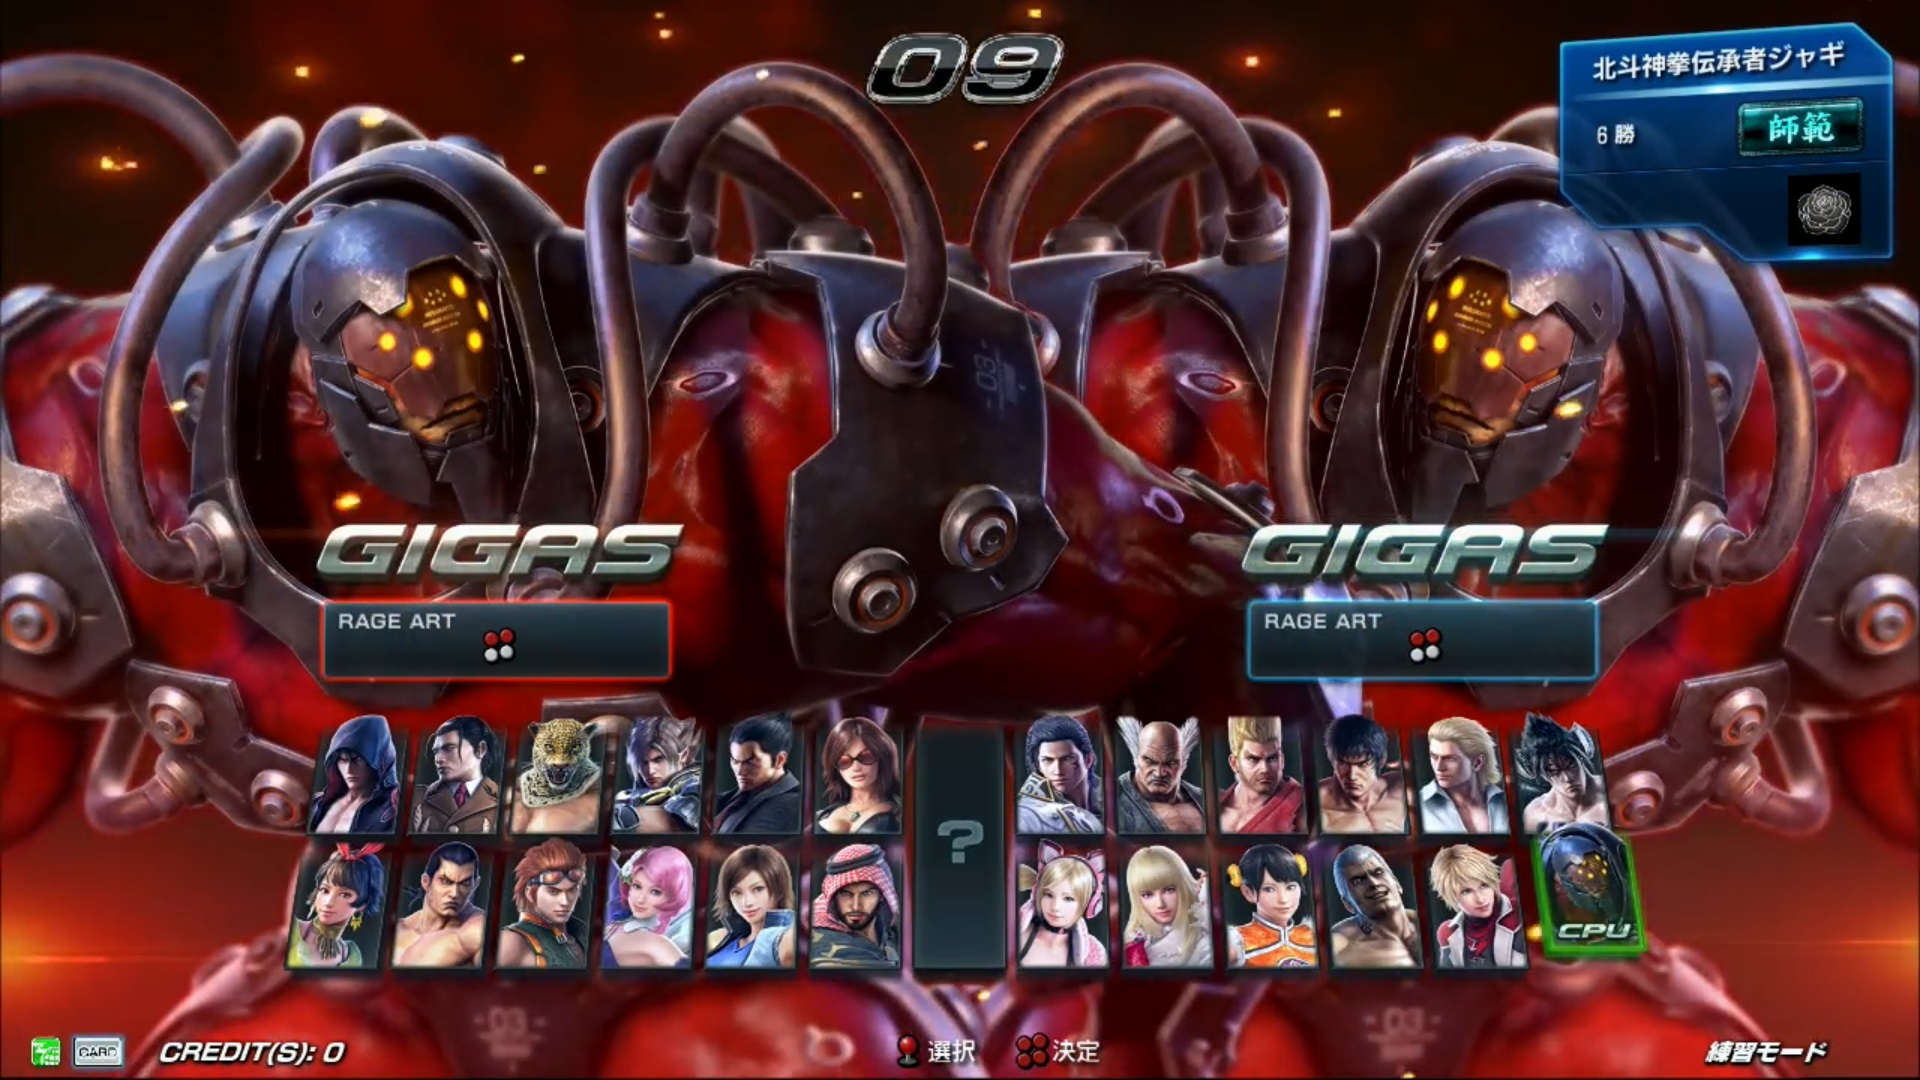 Tekken 7 Gigas In Practice Mode Videos News Avoiding The Puddle